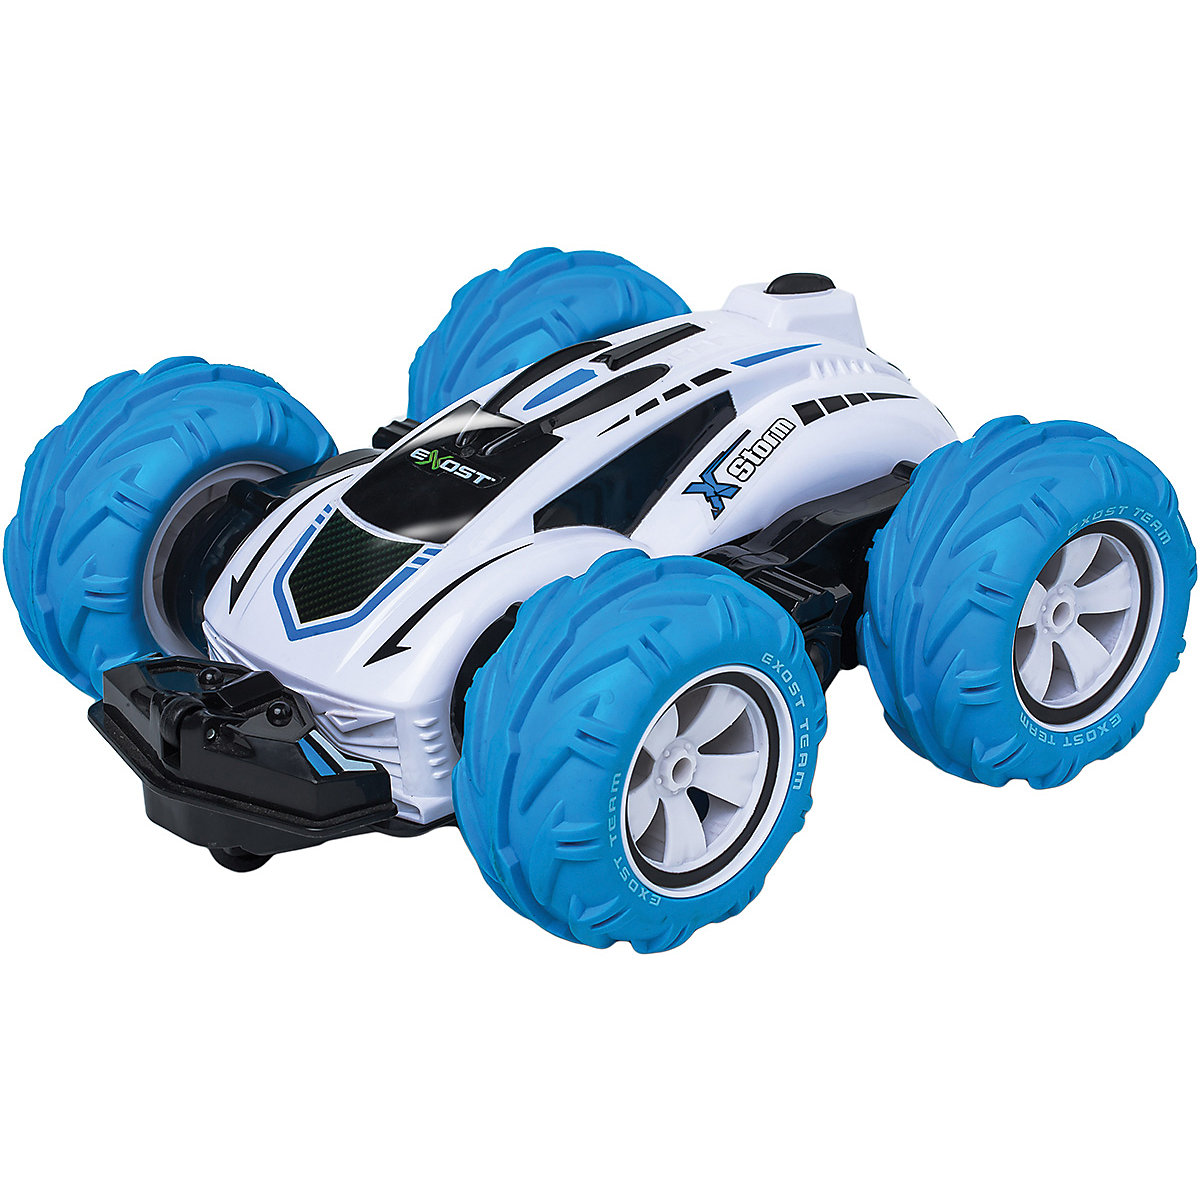 Silverlit RC Cars 10077751 Remote Control Toys radio-controlled toy games children Kids car high quality sensorless 45a brushless esc electric speed controller for rc car racing set ft toys wholesale free shipping